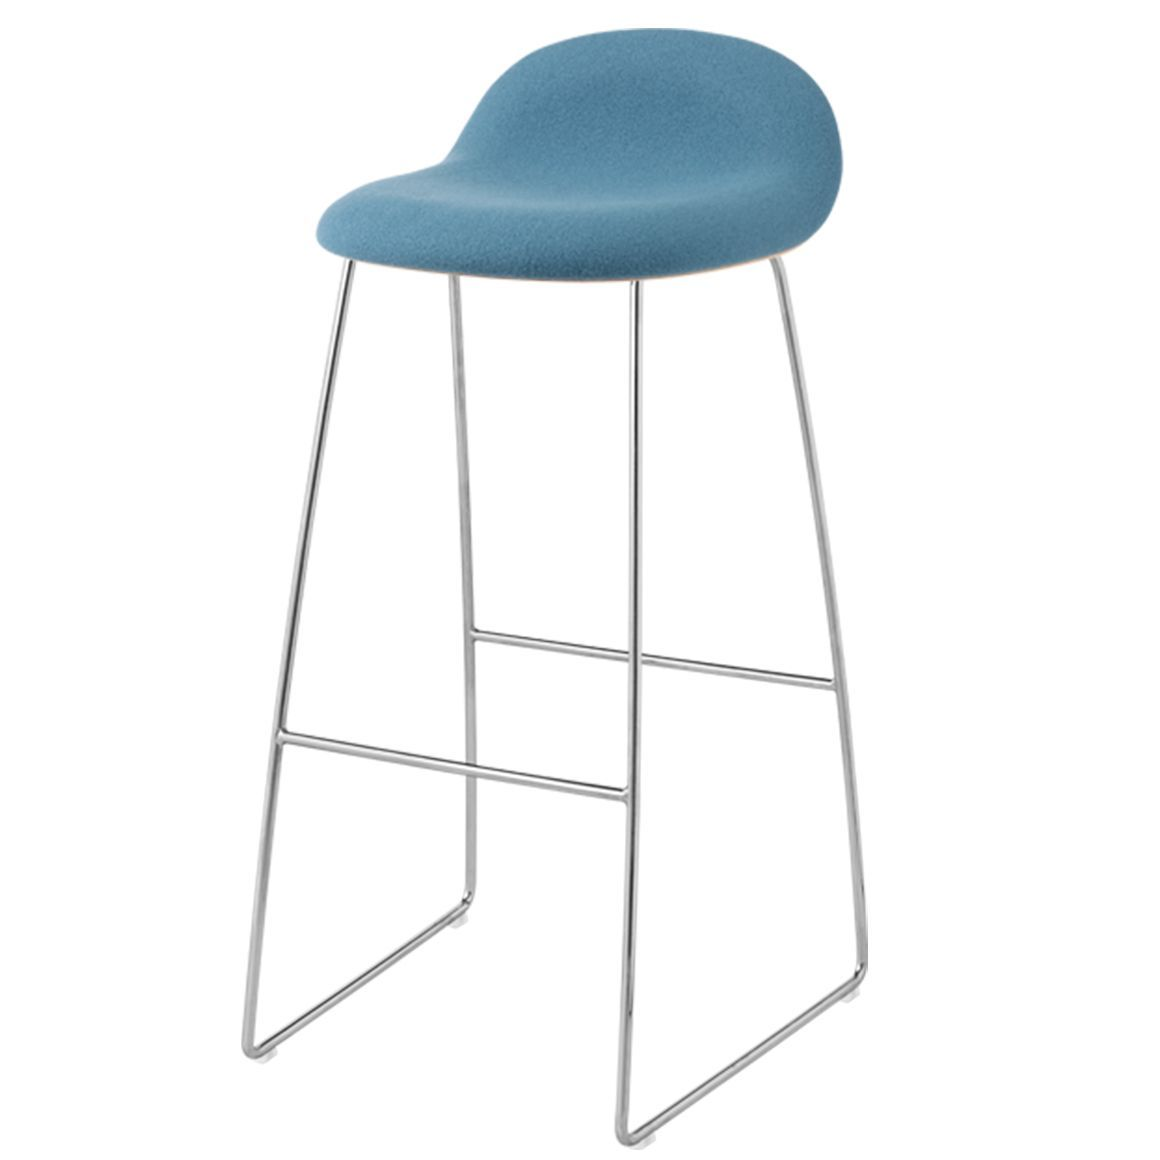 GUBI 3 STOOL-CHROME BASE - Eclectic Cool  - 13